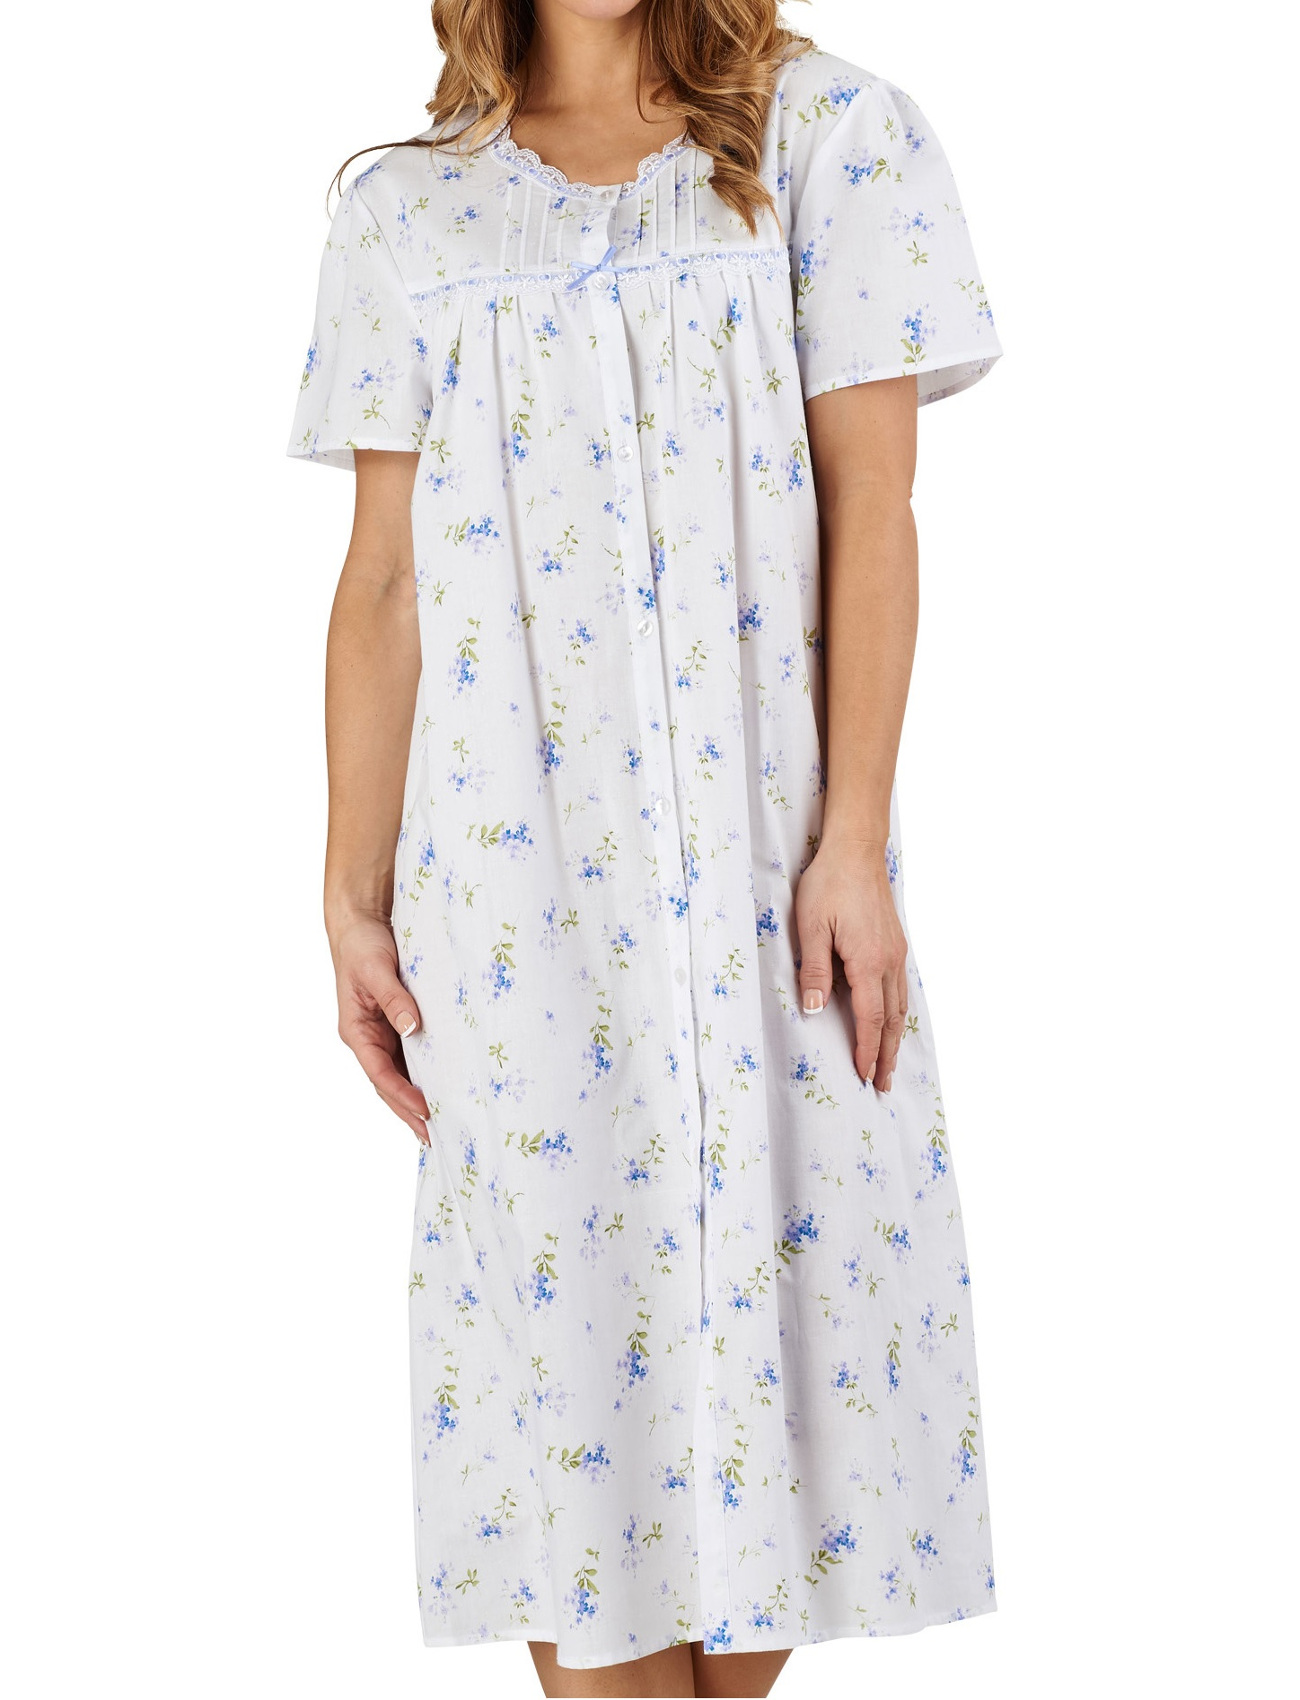 3a193688f1a2 These ladies button through nightdresses by Slenderella have a floral  pattern throughout with short sleeves and lace trim and would be perfect  for keeping ...